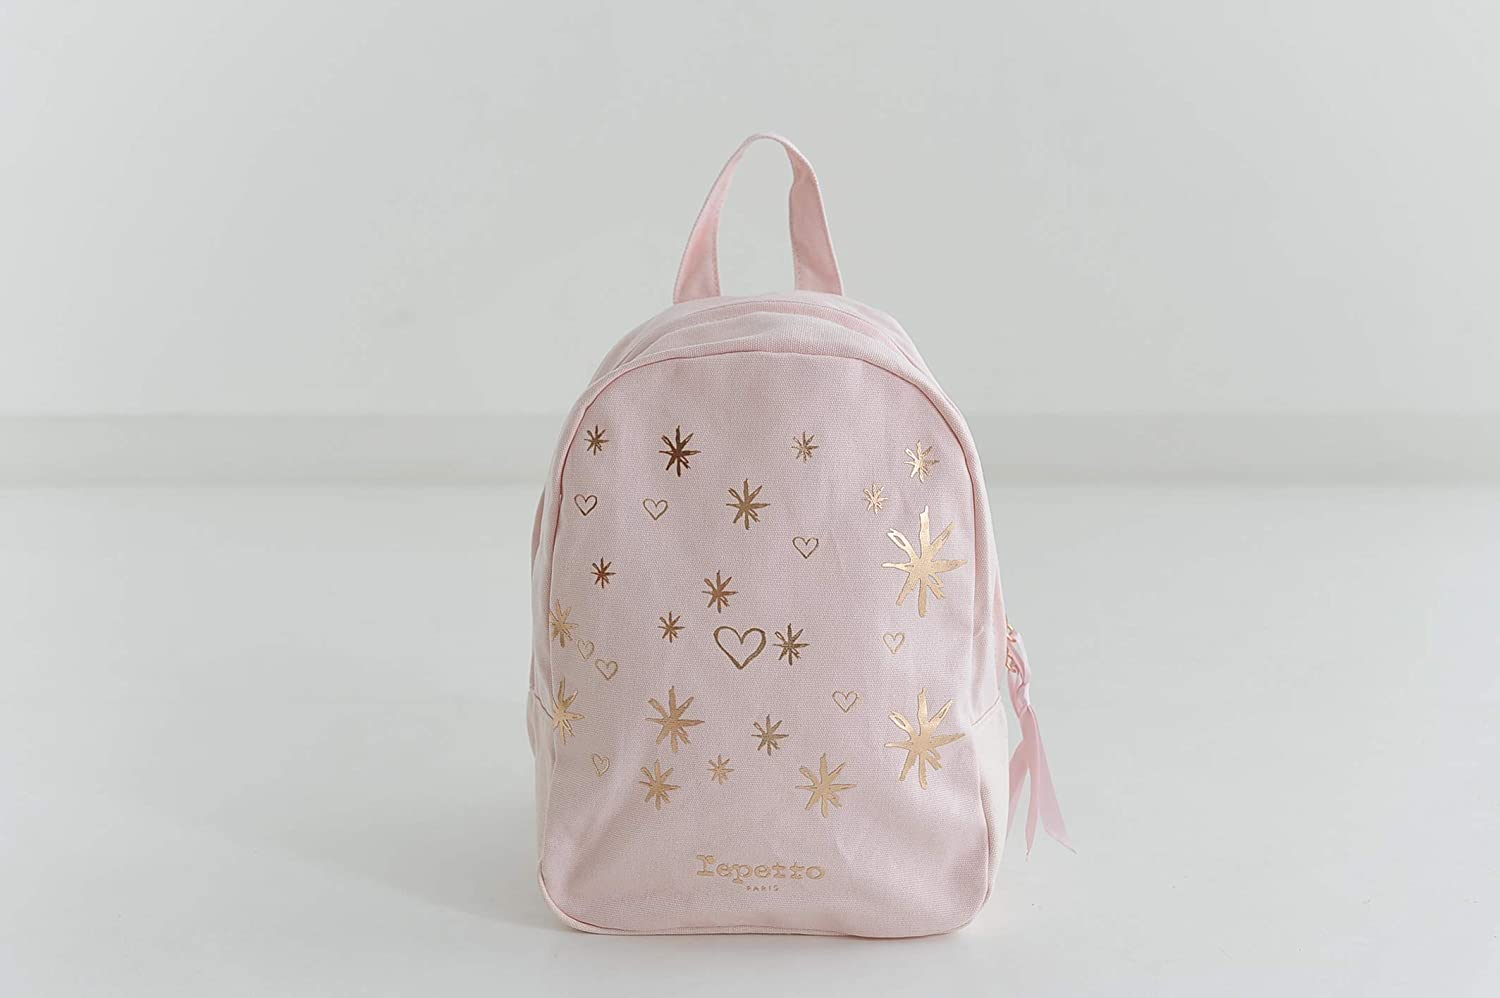 repetto STARS backpack バレエバックパック(50301/B0301T)  73(pale pink) B07PNLPKLL